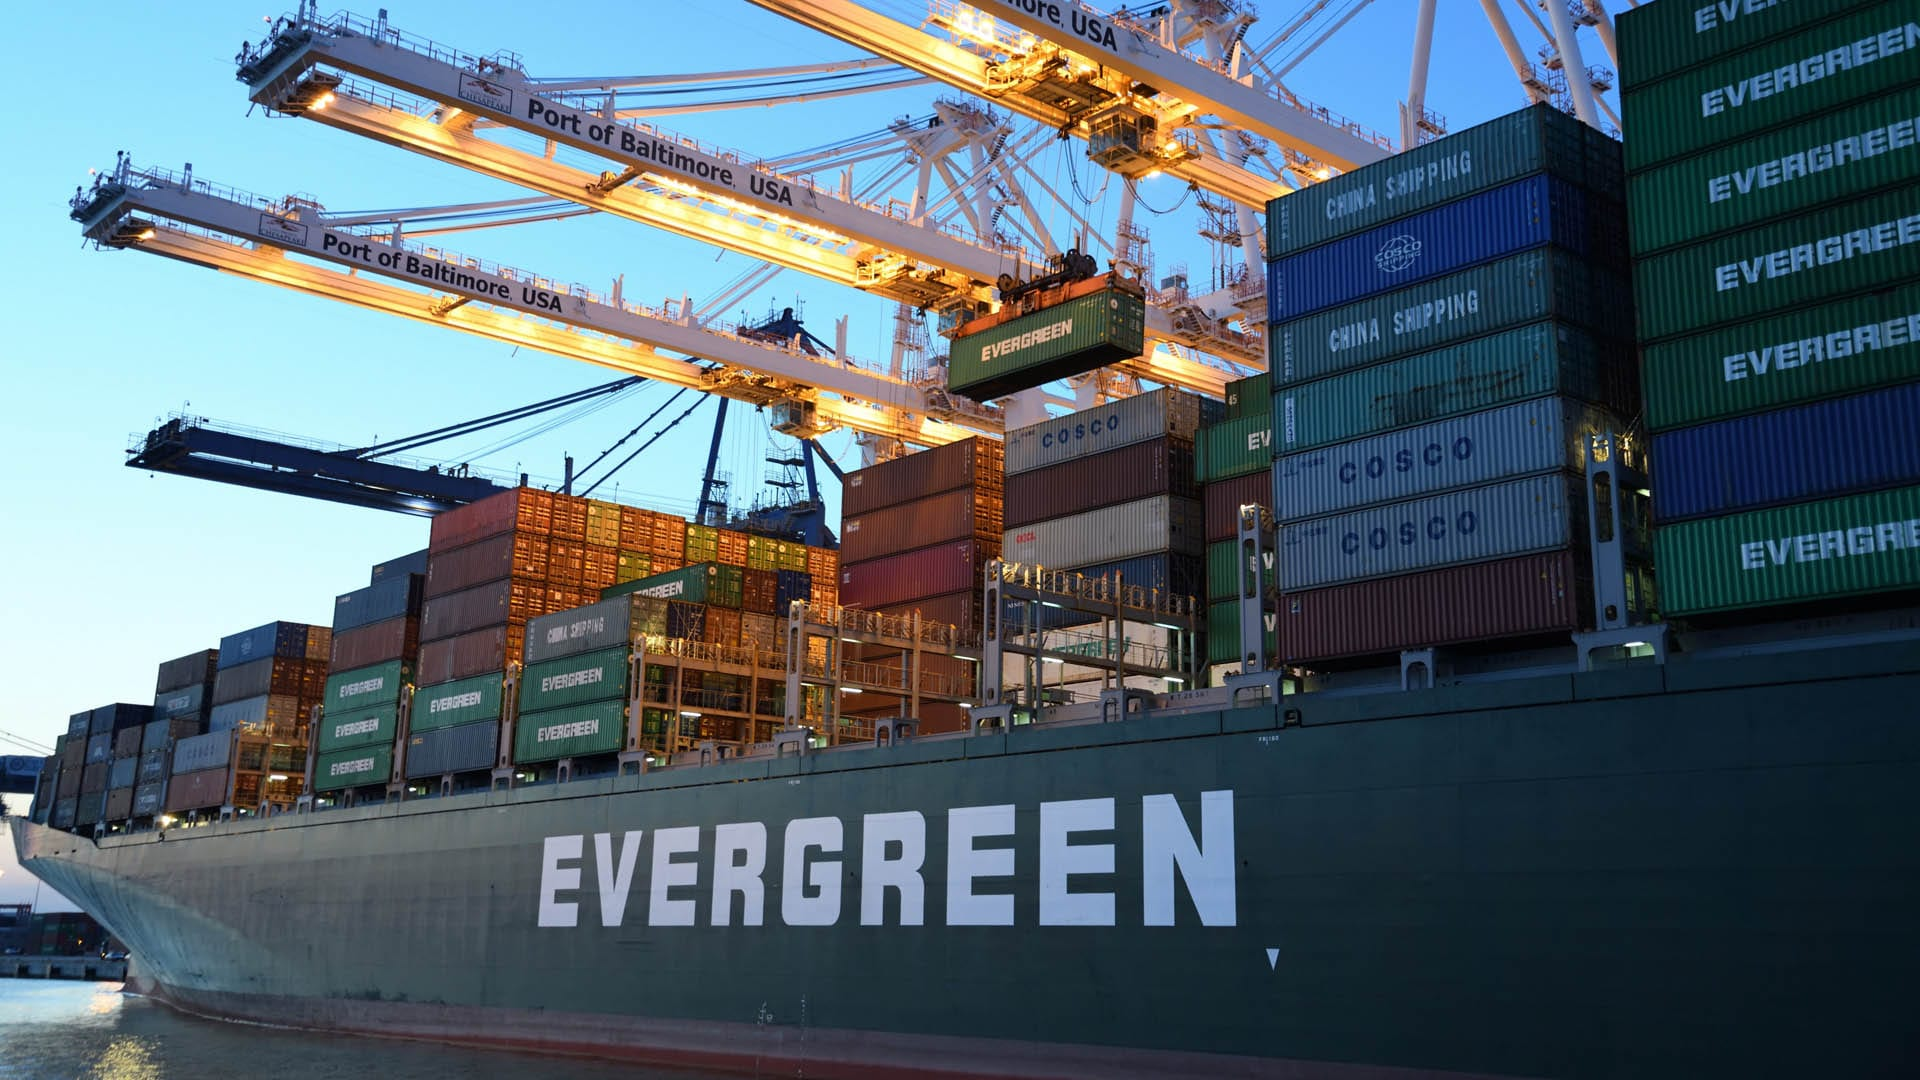 Evergreen Signs Up for Four 23,000 TEU Boxships in China